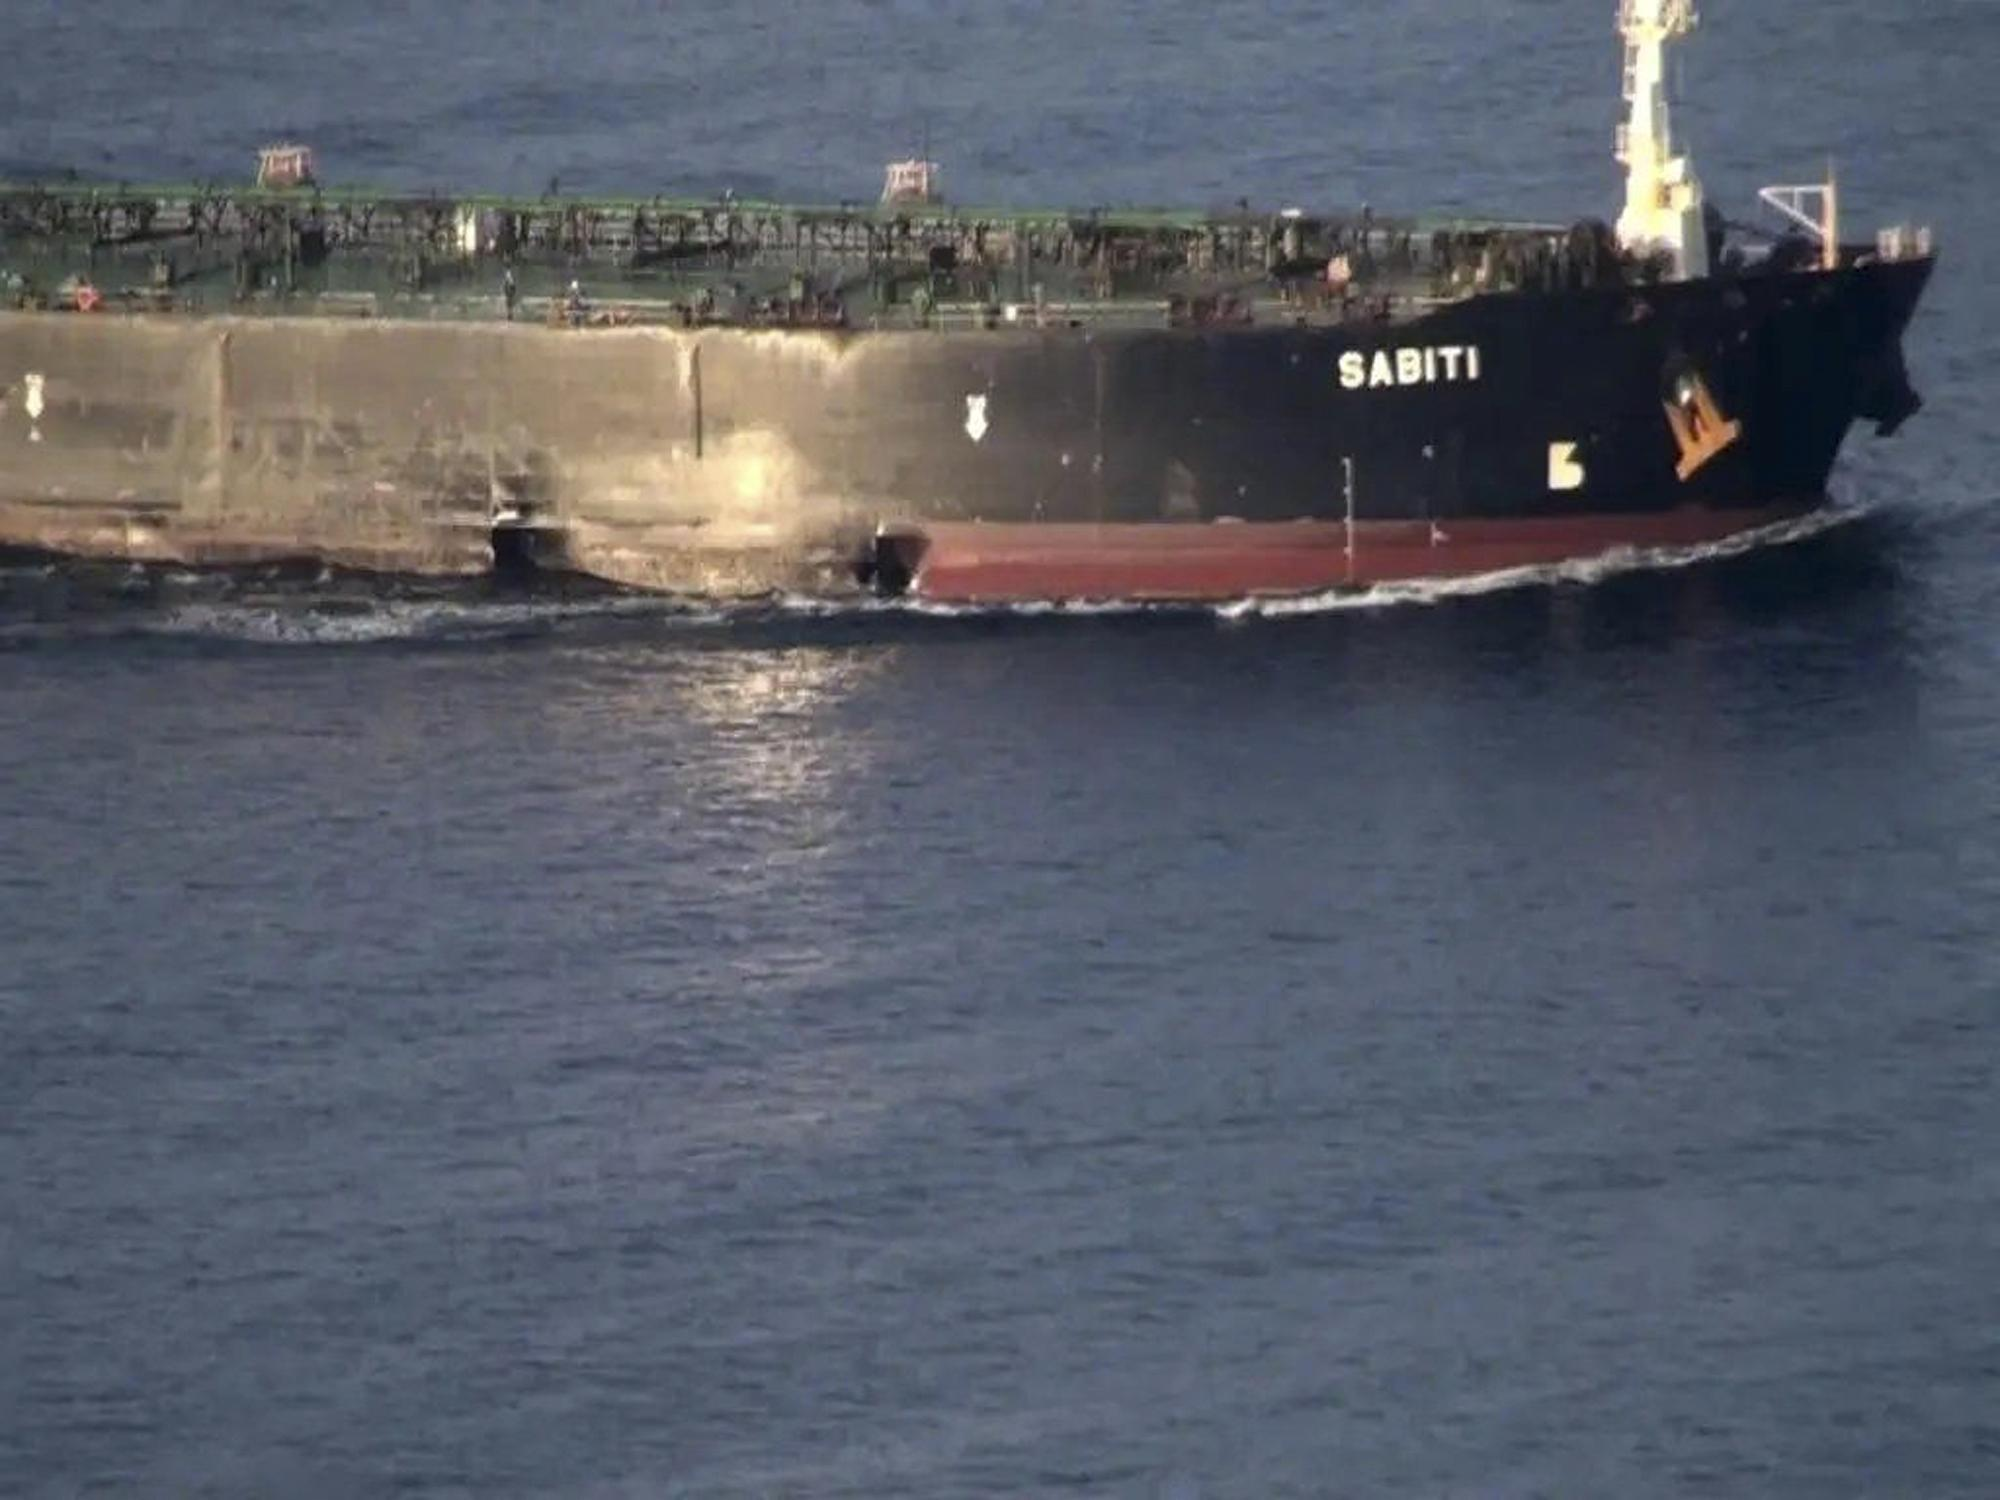 Images show damage after mysterious Iran oil tanker attack